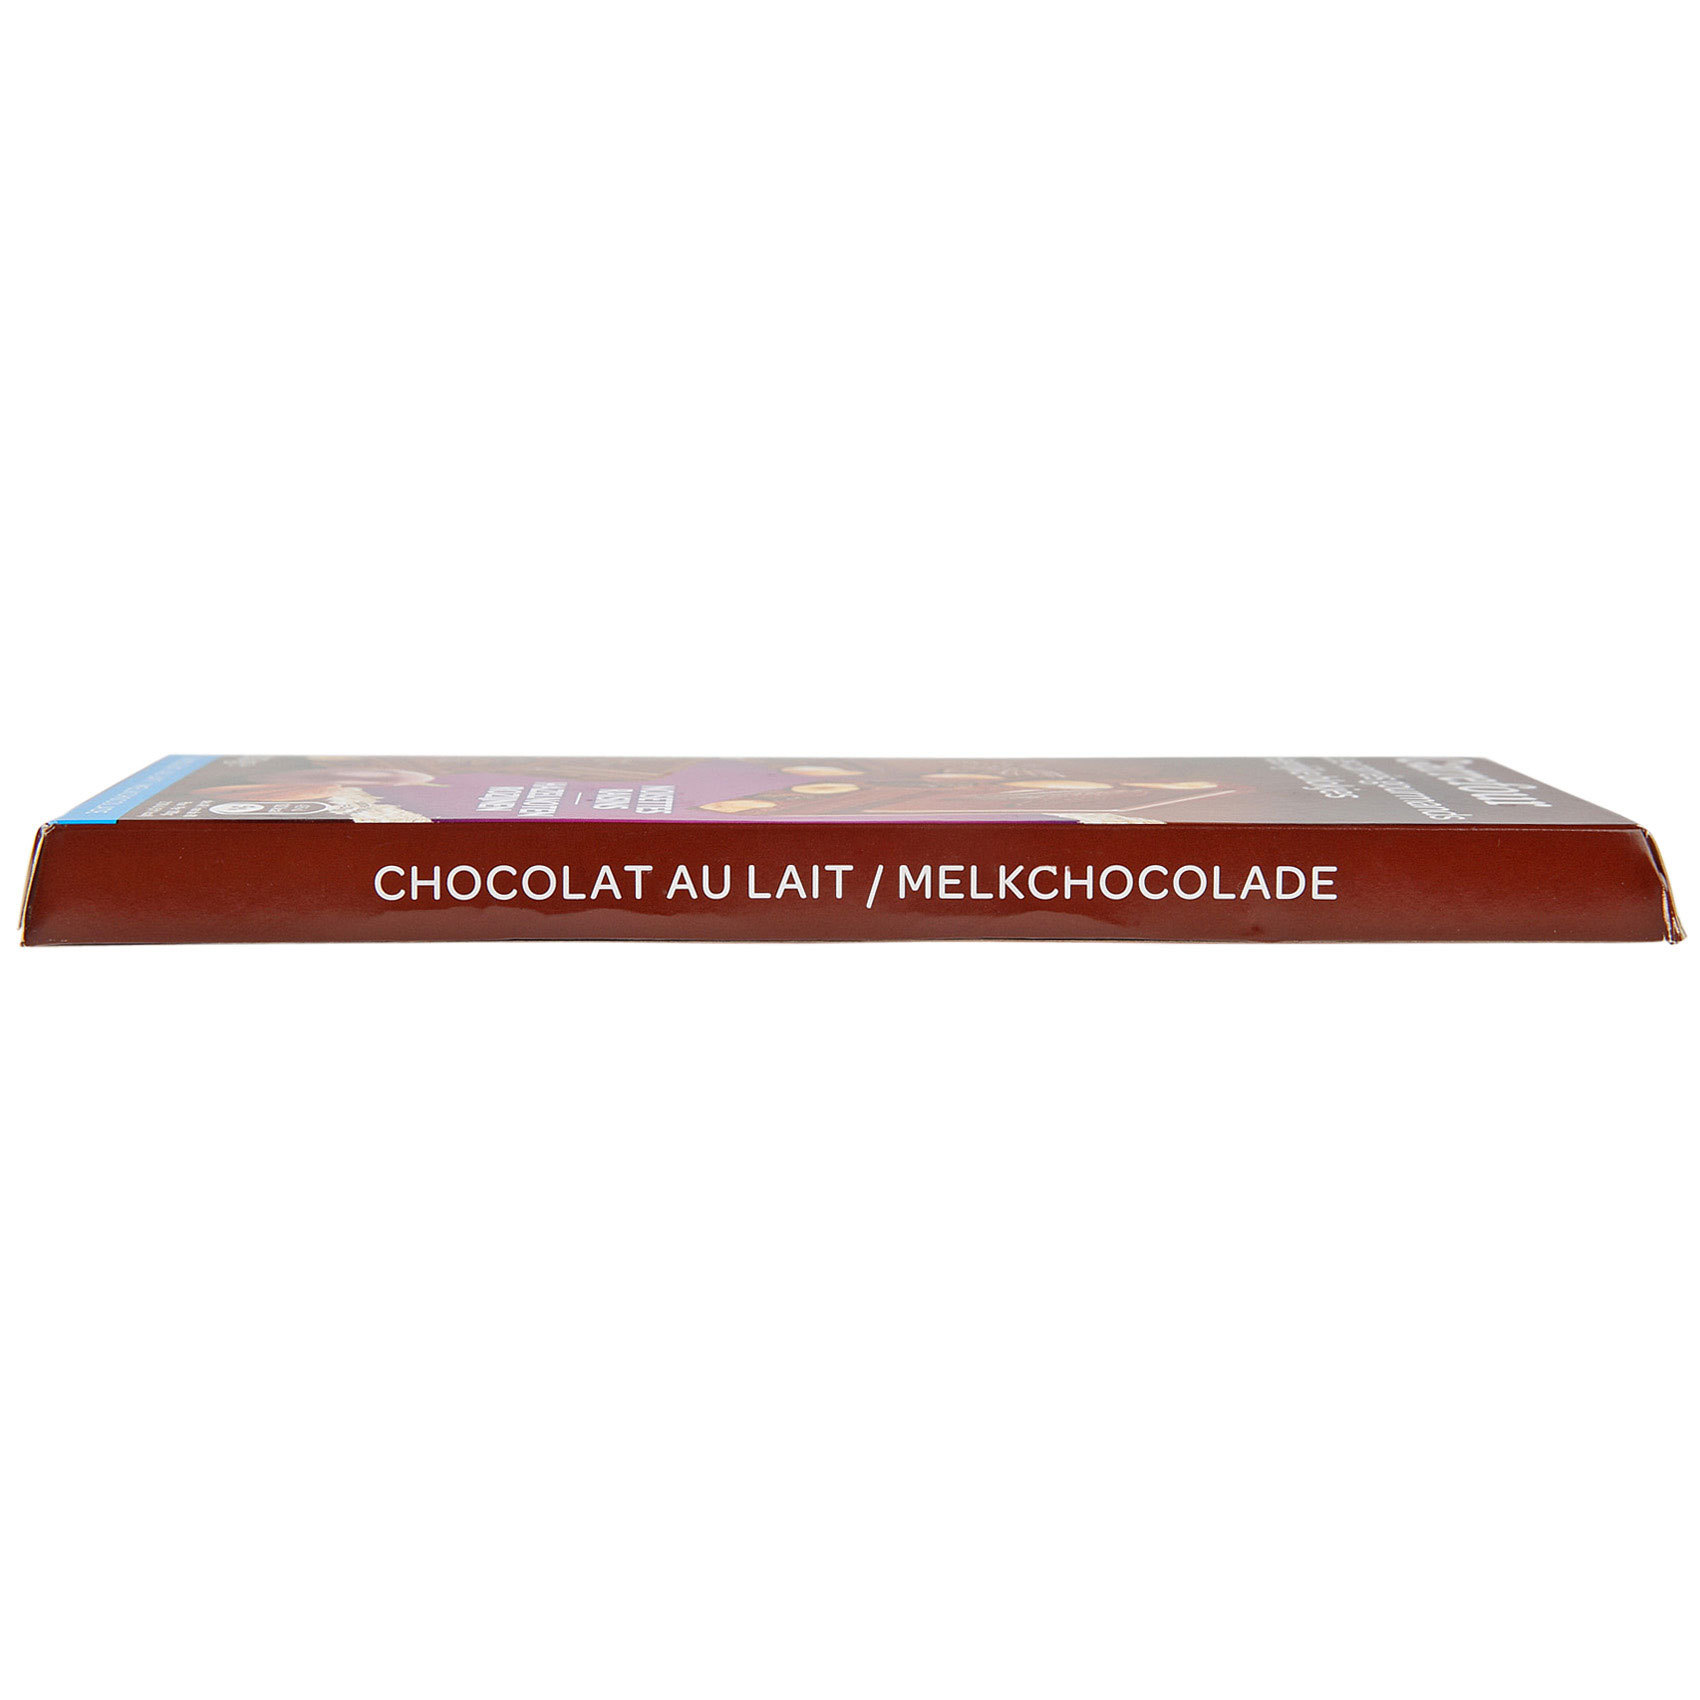 CRF MILK CHOCO HAZEL/RAISIN 200G